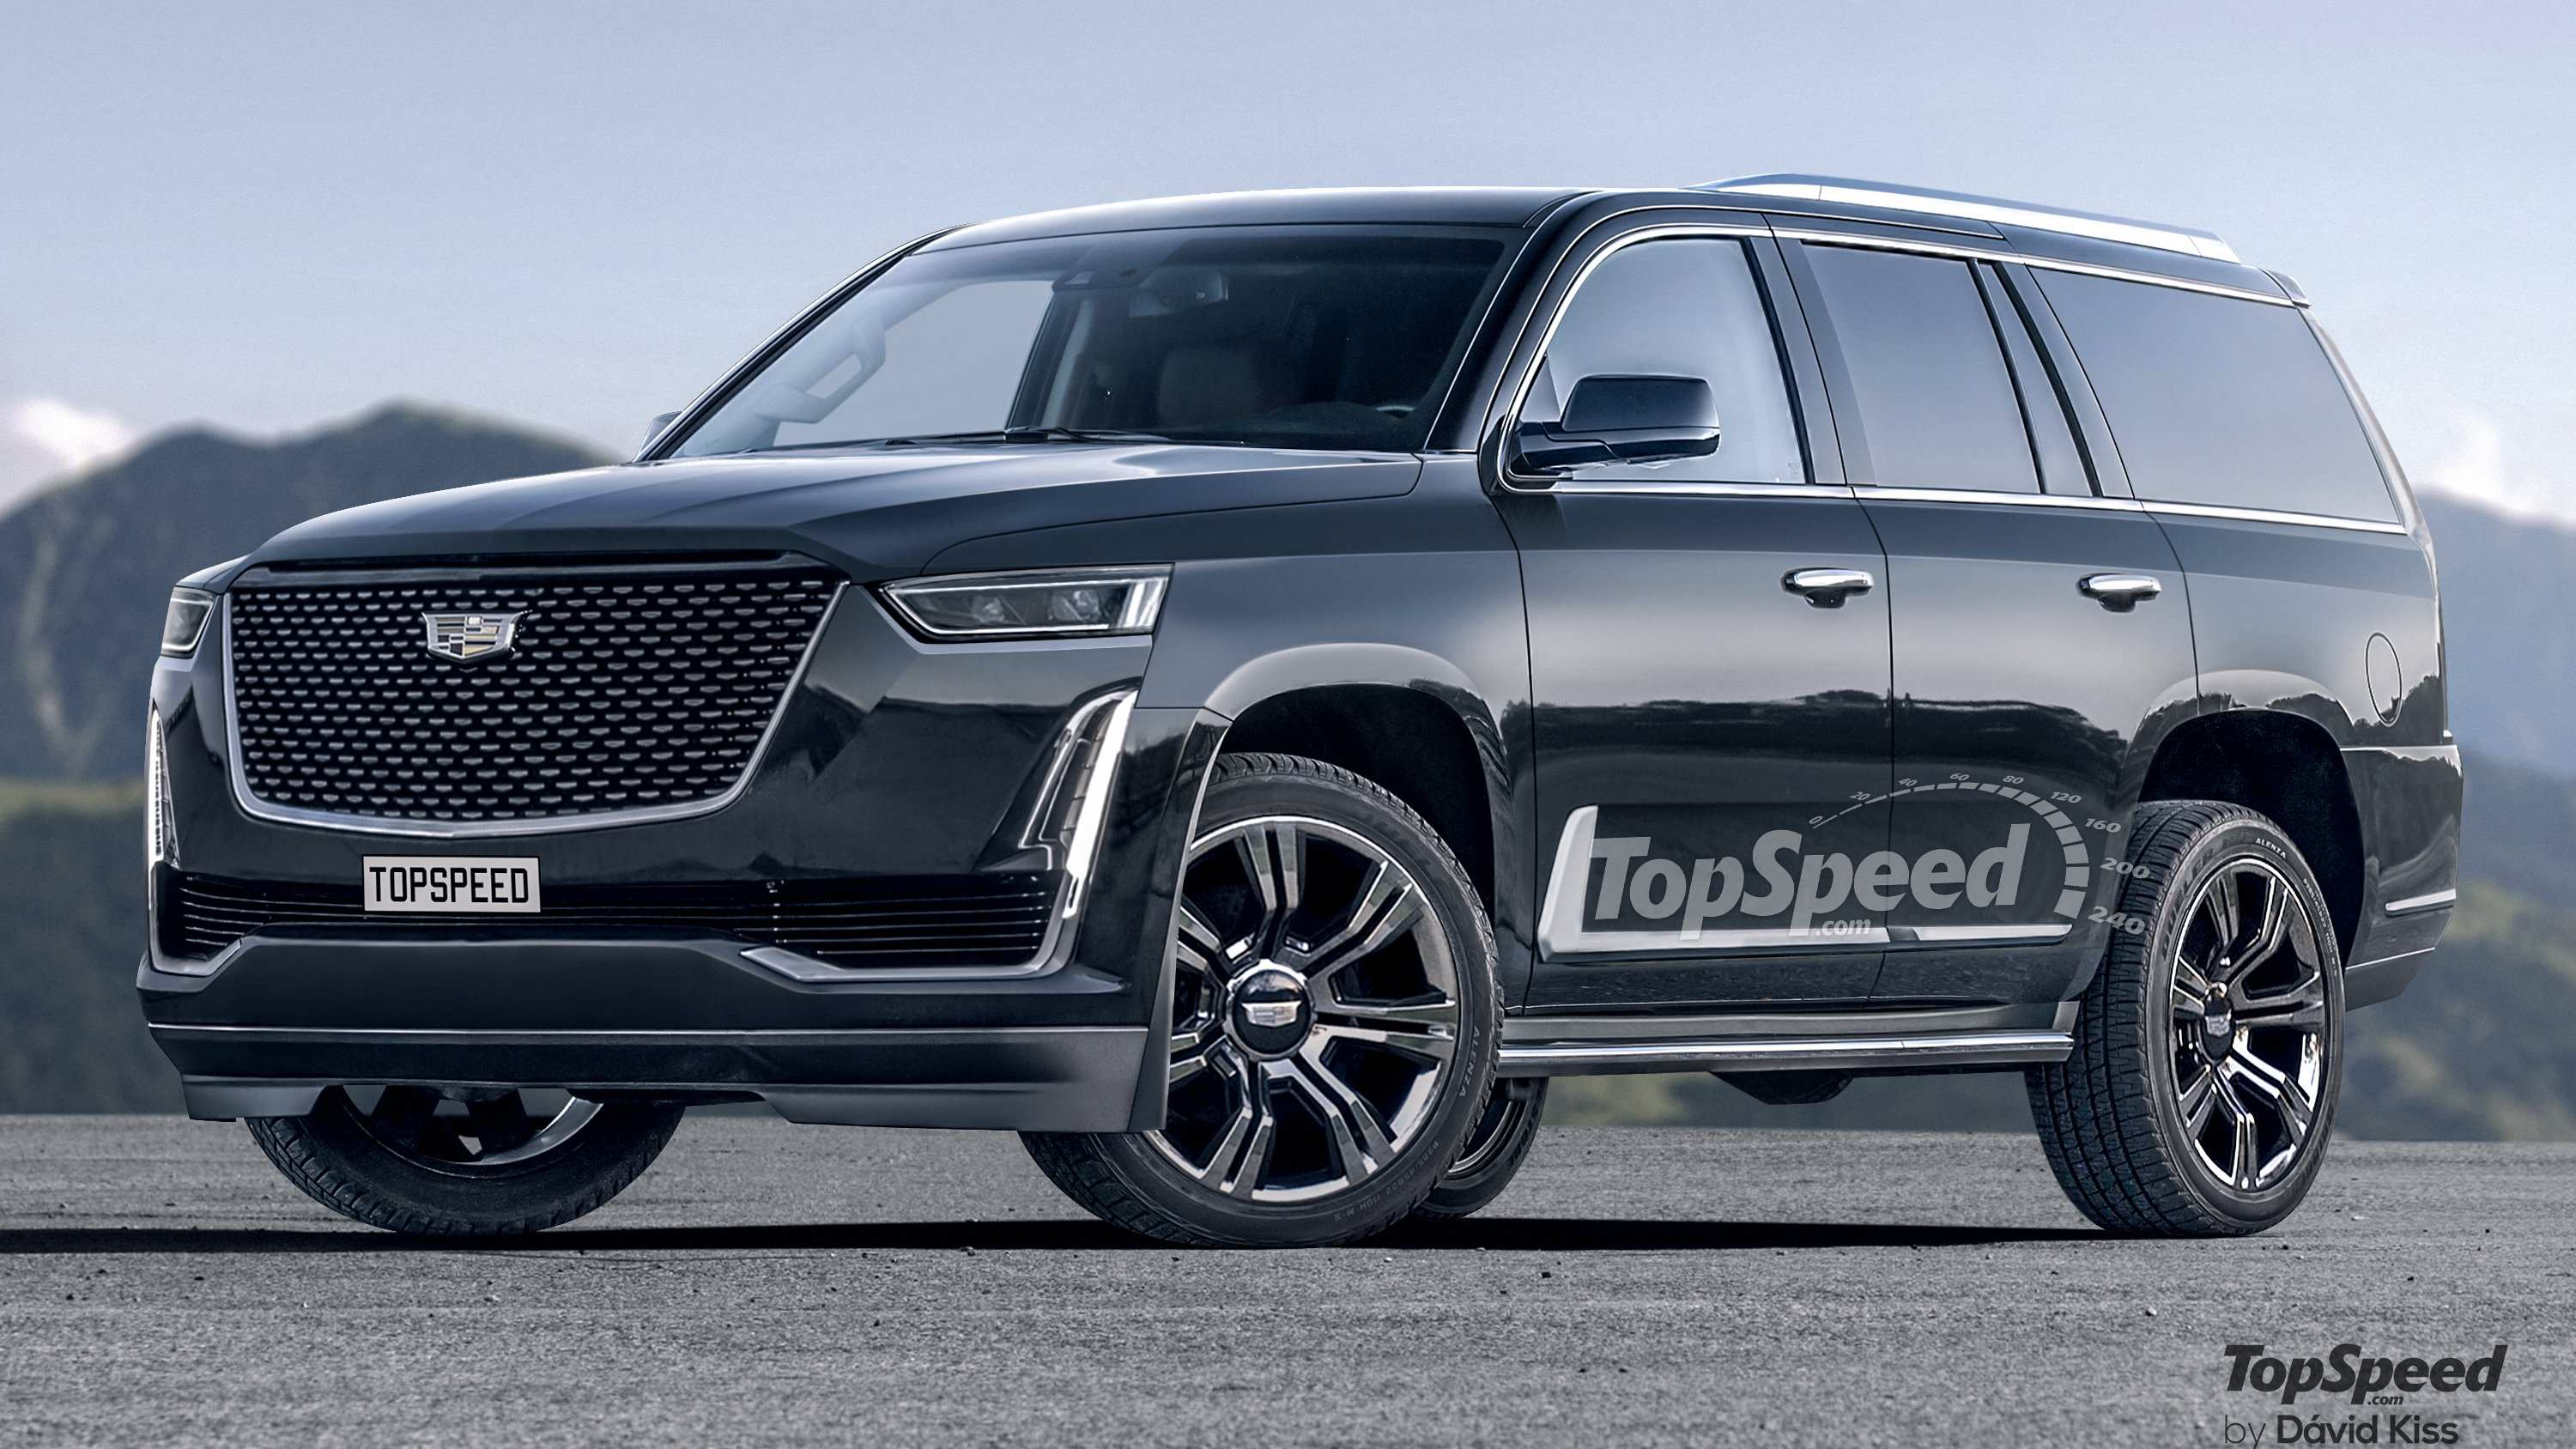 47 Great Release Date For 2020 Cadillac Escalade History for Release Date For 2020 Cadillac Escalade